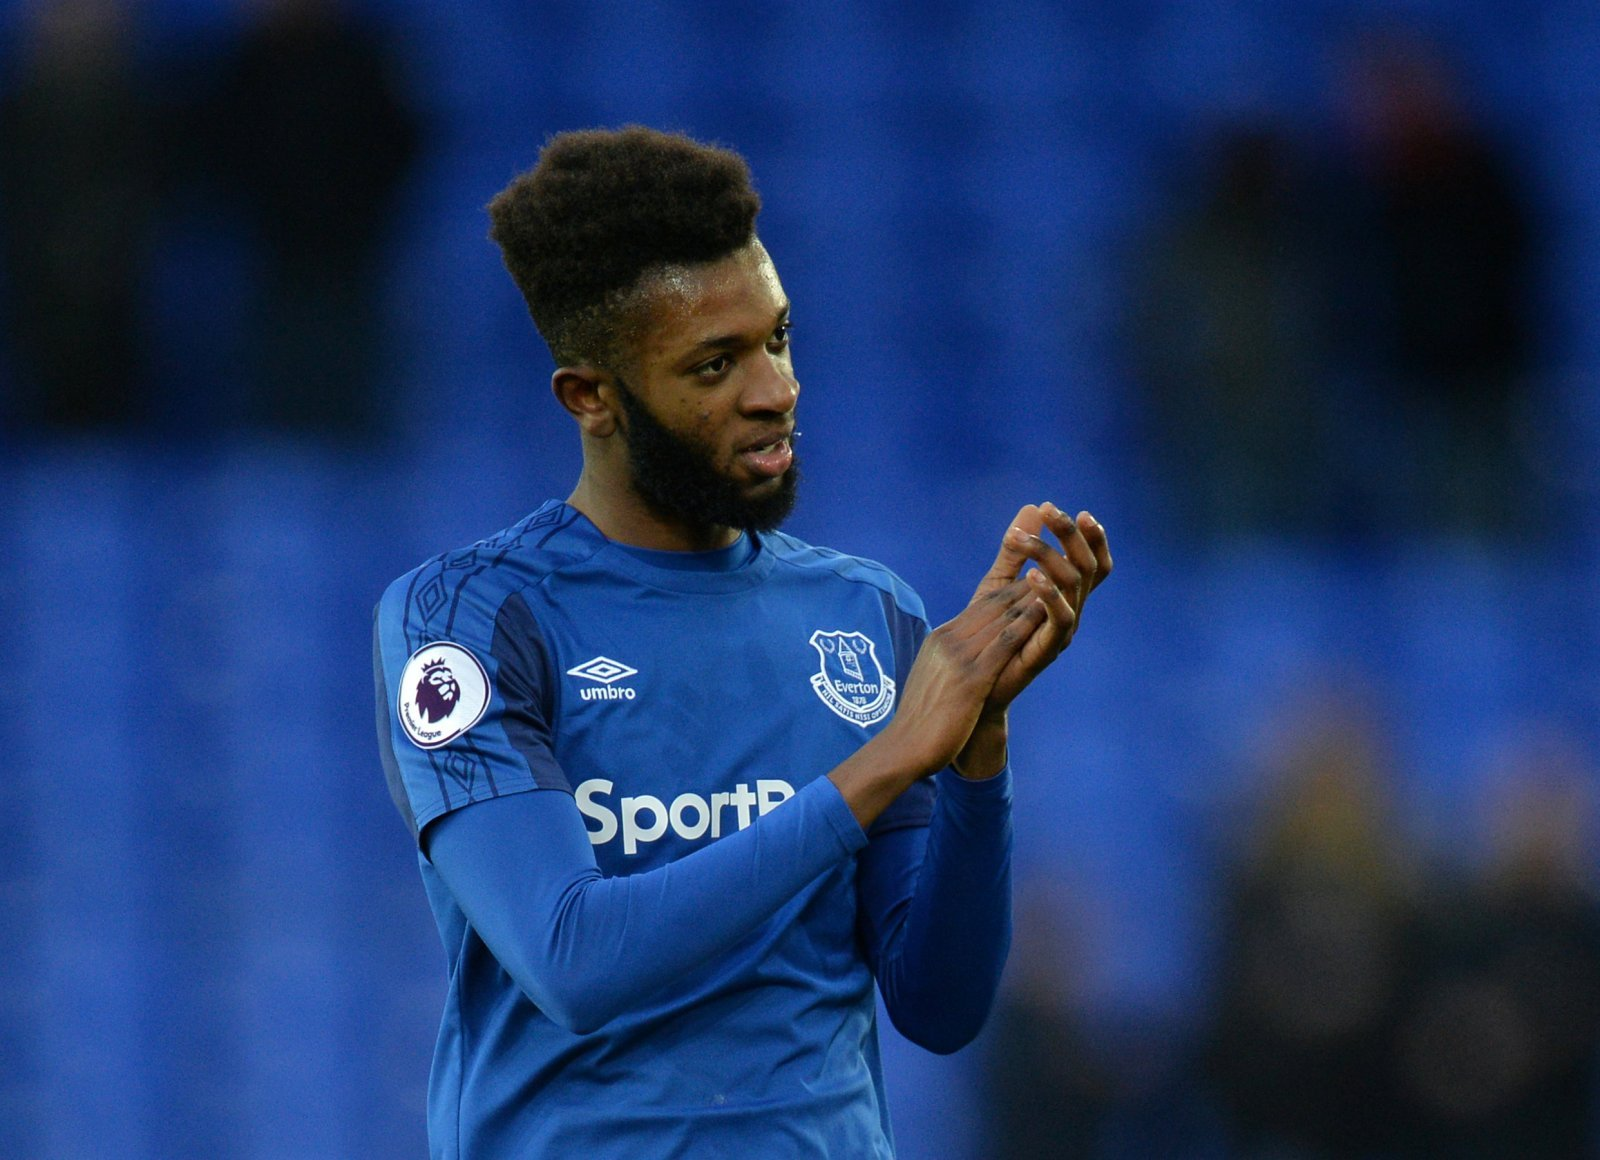 Rangers must look to sign Everton's Beni Baningime in January